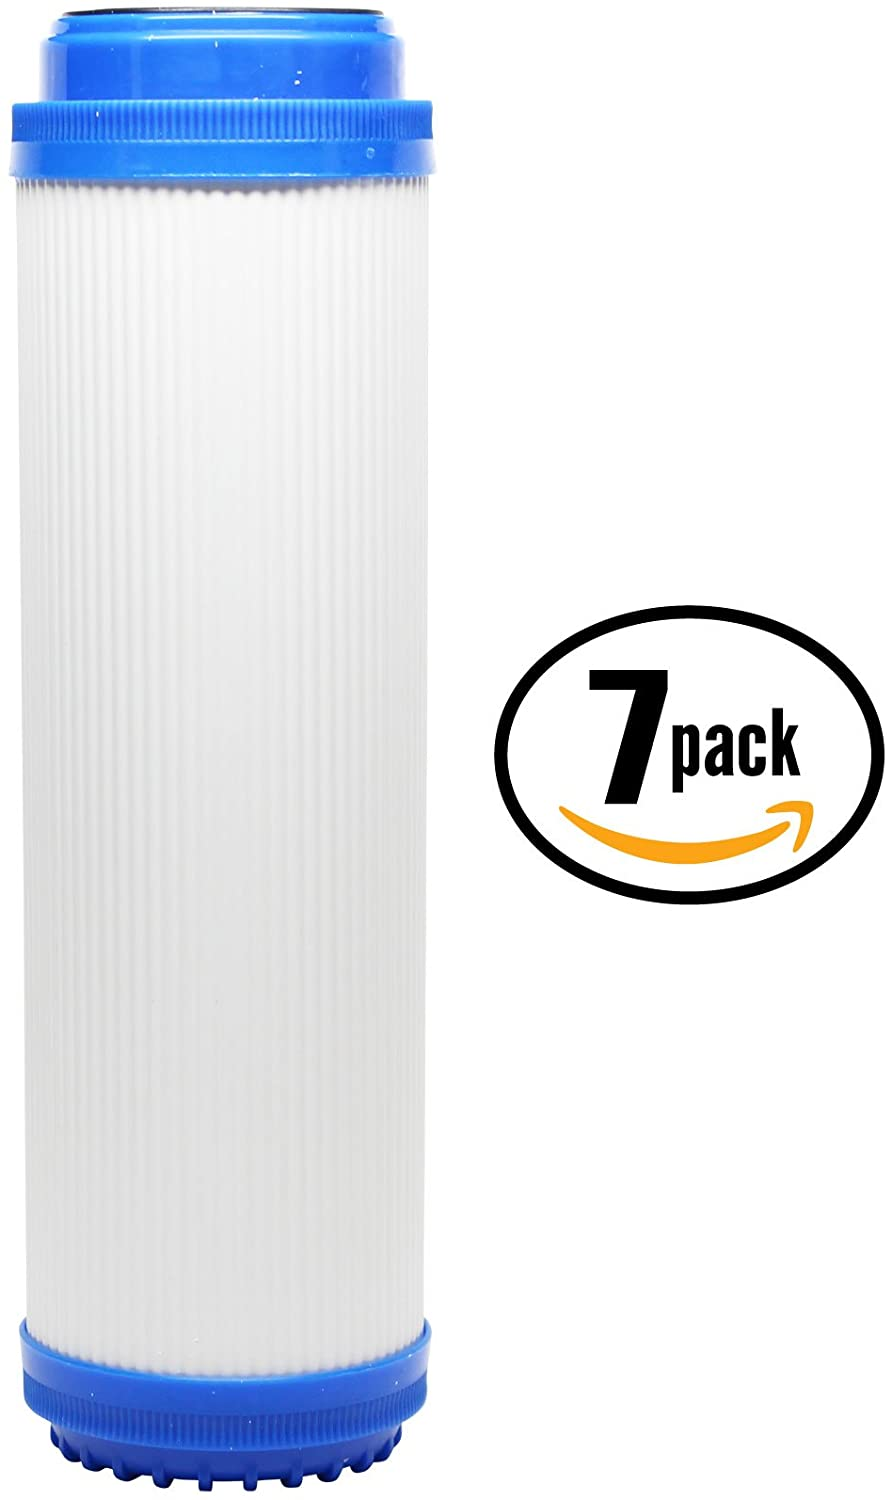 7-Pack Replacement for Hydronix HF3-10CLBK12PR Granular Activated Carbon Filter - Universal 10-inch Cartridge Compatible with Hydronix HF3-10CLBK12PR 10